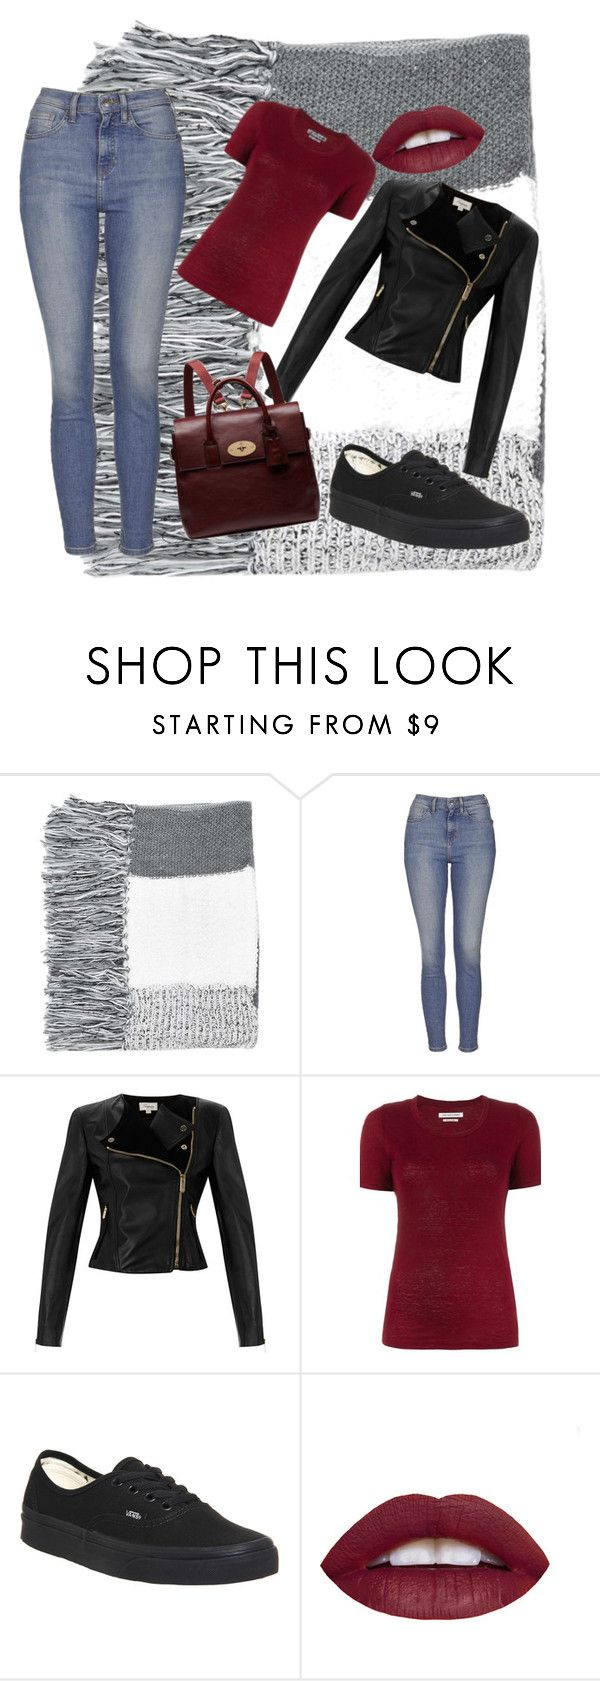 """"" by samra-alic ❤ liked on Polyvore featuring beauty, Topshop, Temperley London, Étoile Isabel Marant, Vans and Mulberry"